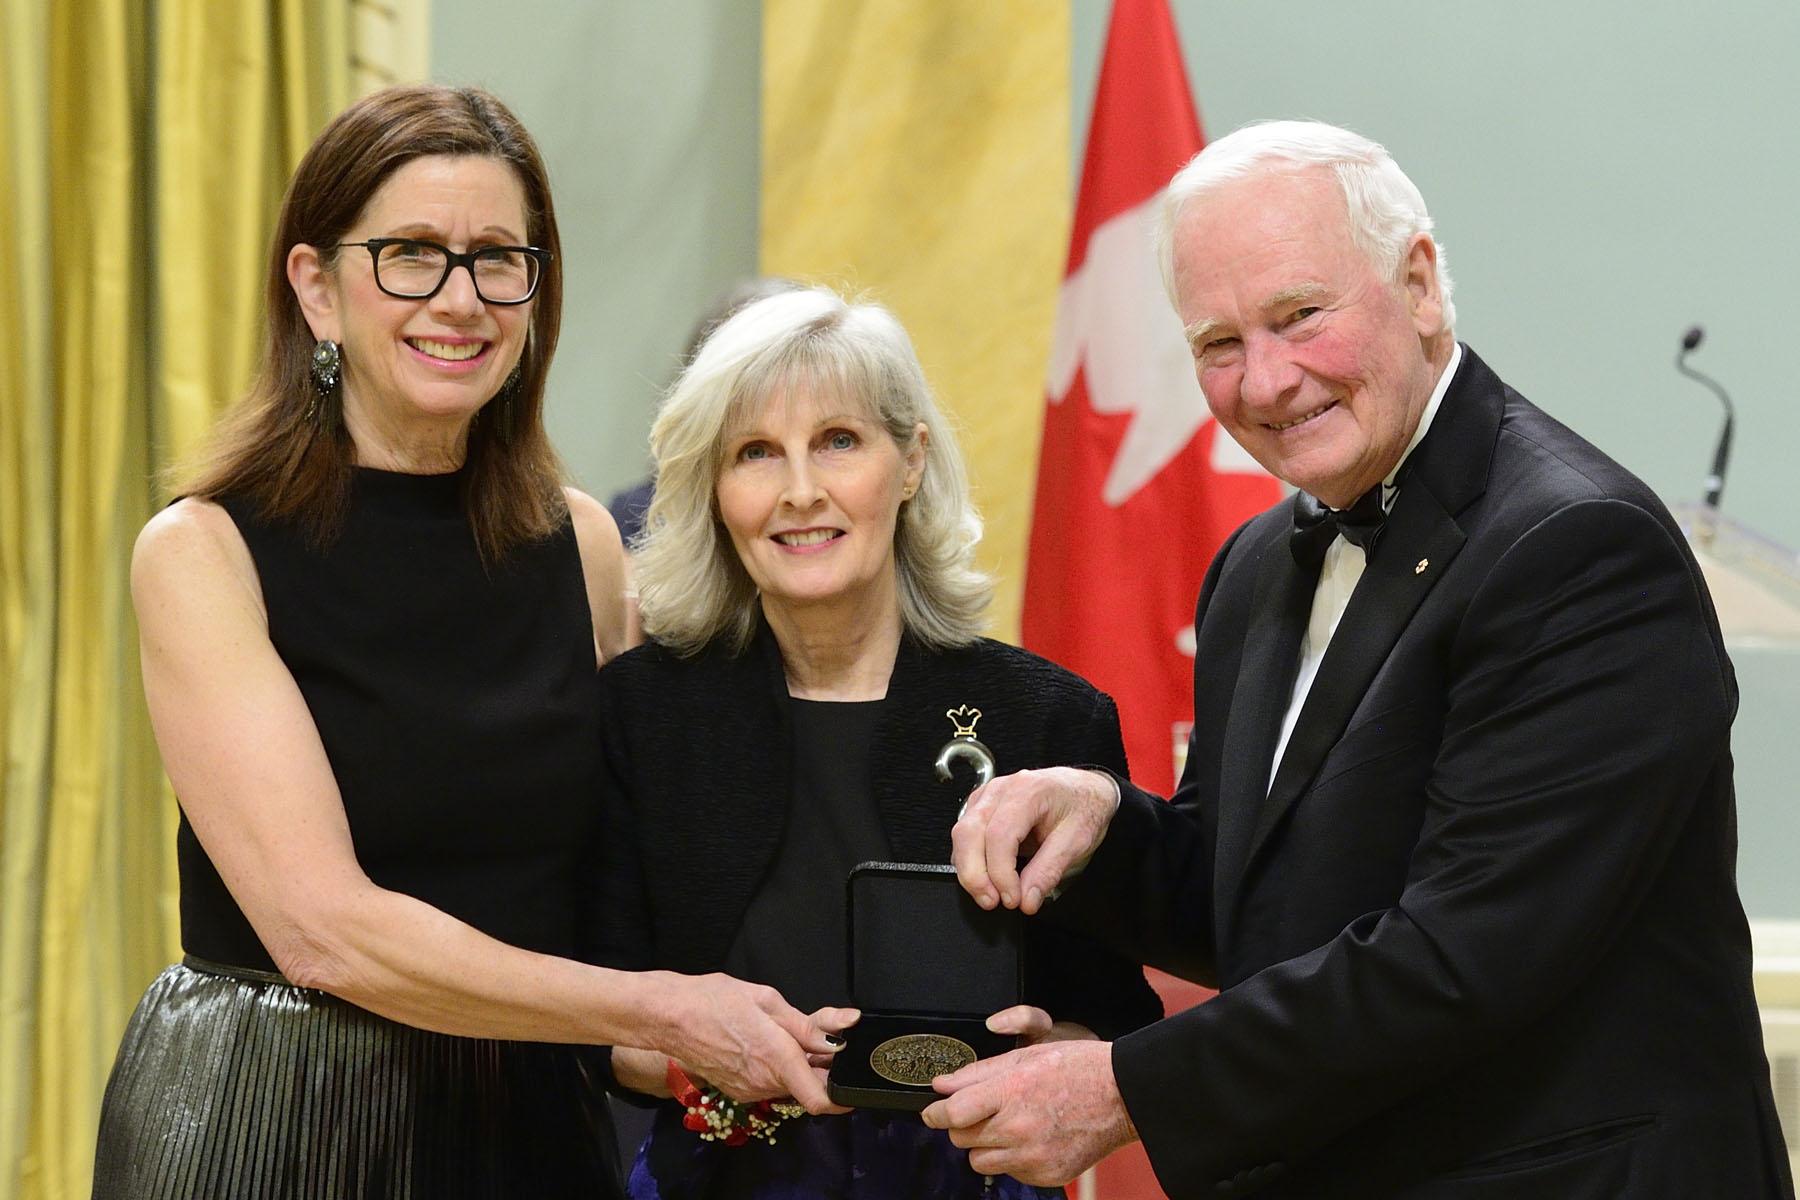 Lastly, the Governor General presented the Saidye Bronfman Award to Pamela Ritchie for her jewellery that brings together traditional craft processes, contemporary ideas of science and culture, and the language of materials.